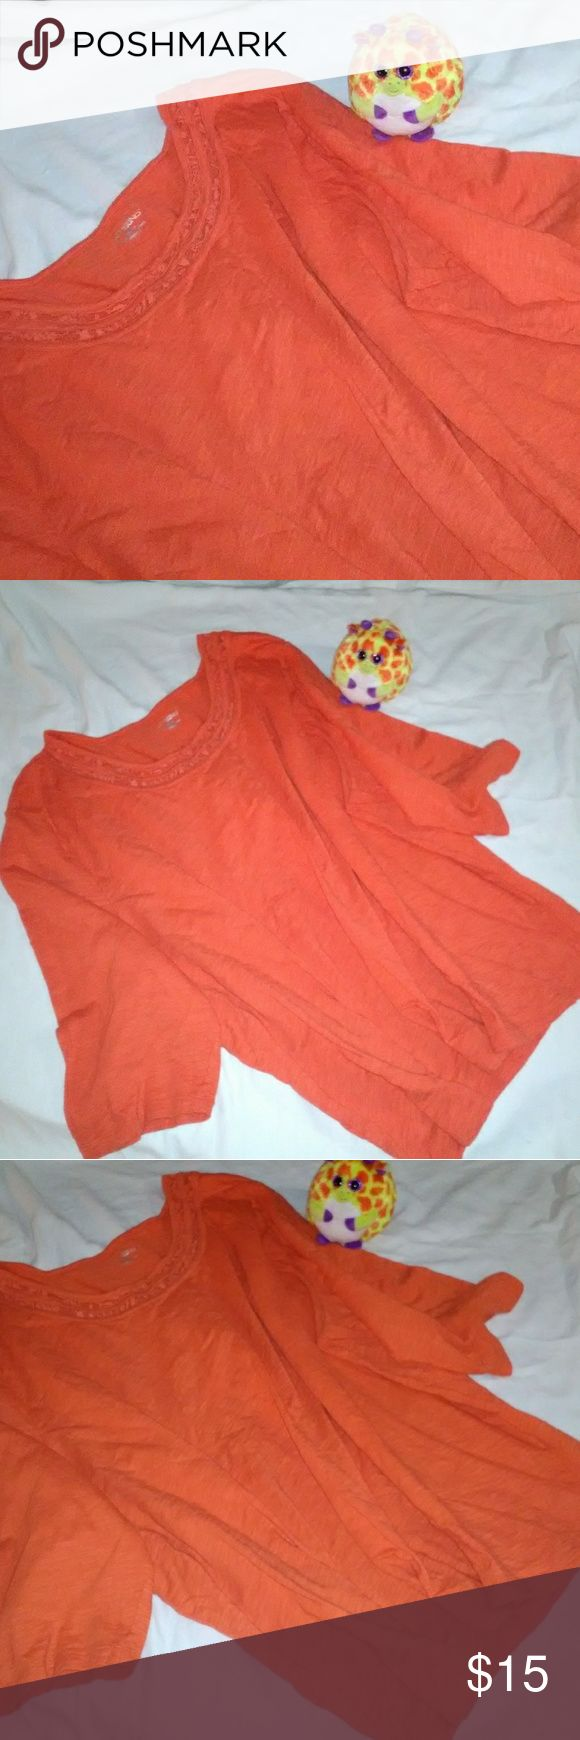 Catherines Loud Orange Juice Long Sleeve Top Sz 3X Offered here is a fresh squeezed loud and bright orange long-sleeved blouse / top. I absolutely love the saturated color of the shirt. It is a size 3x 26/28 w. Please note, anything photographed along with this shirt is not included. Tops Tees - Long Sleeve